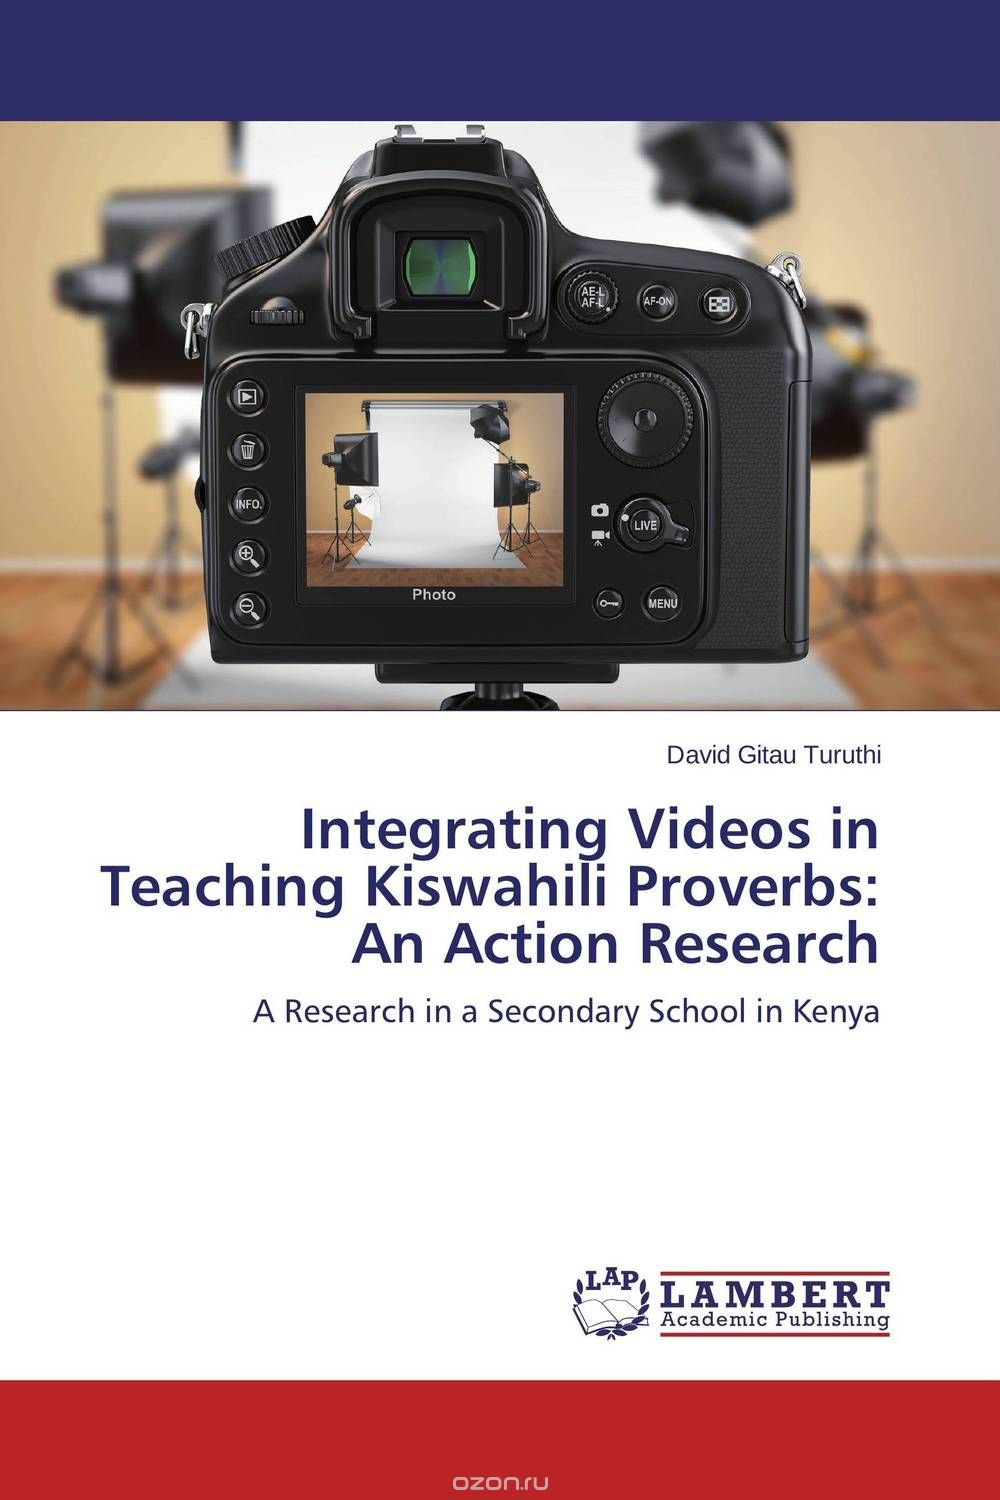 Integrating Videos in Teaching Kiswahili Proverbs: An Action Research